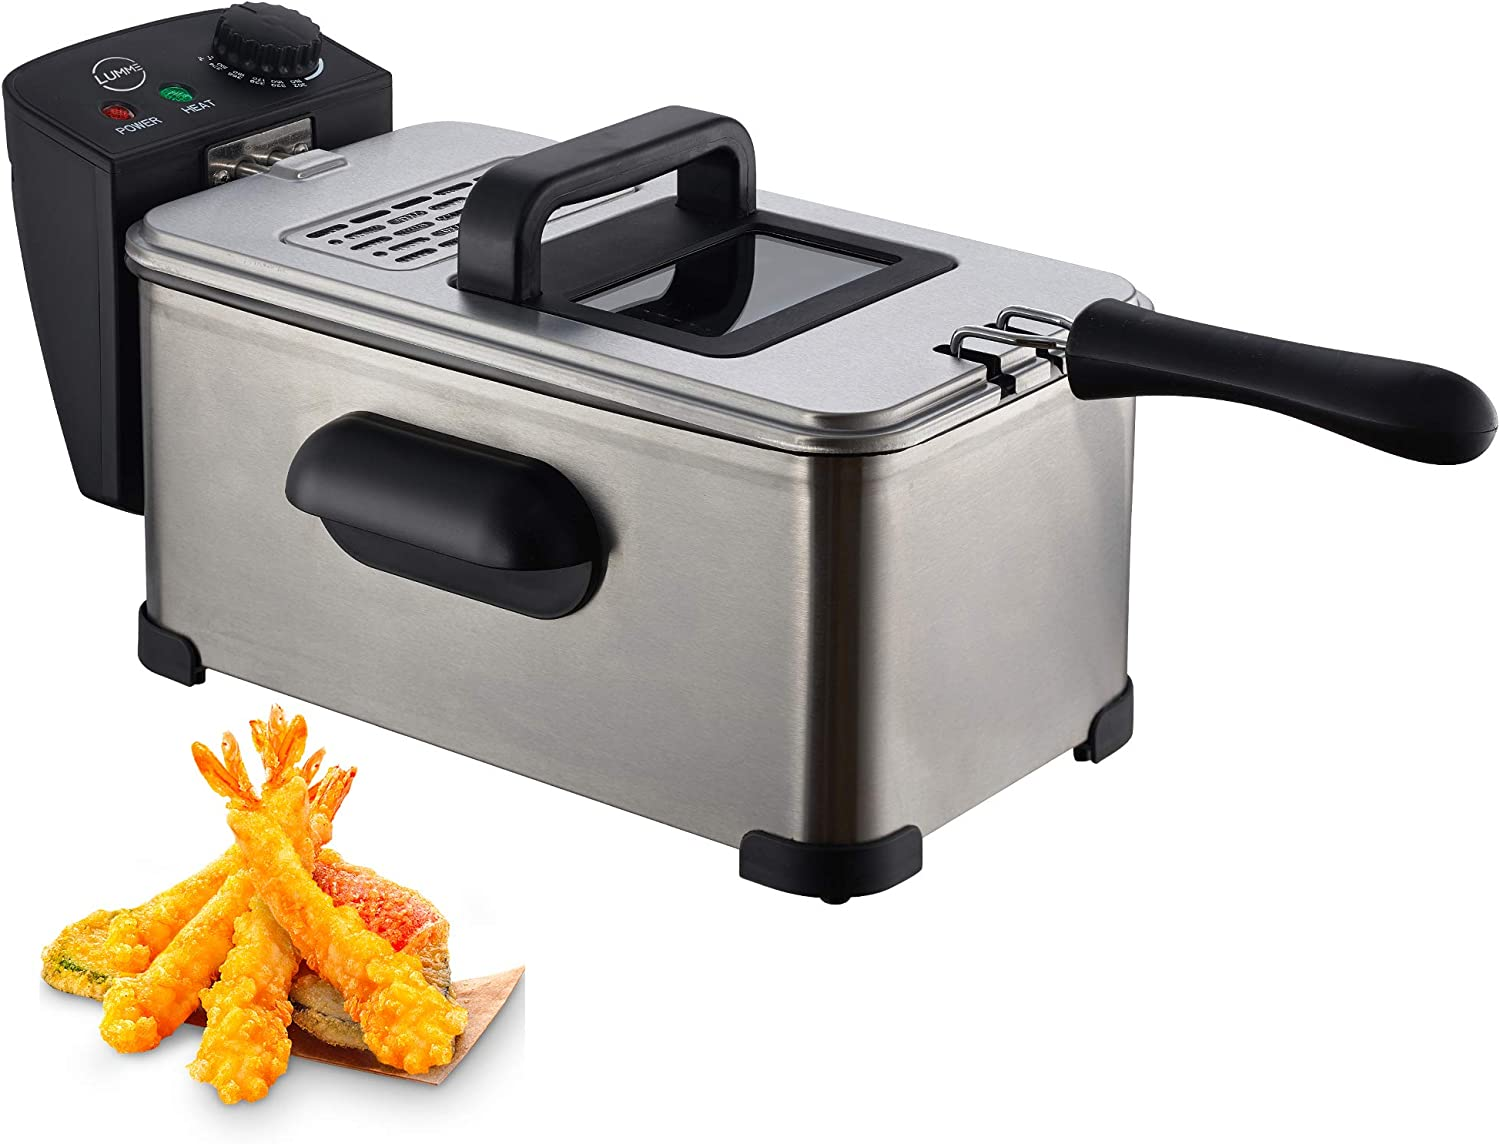 Lumme Deep Fryer with Basket, Stainless Steel, Easy to Clean Deep Fryer Cool Touch Handles On Housing, Basket included, Clear Vent, Adjustable Temp, Silver